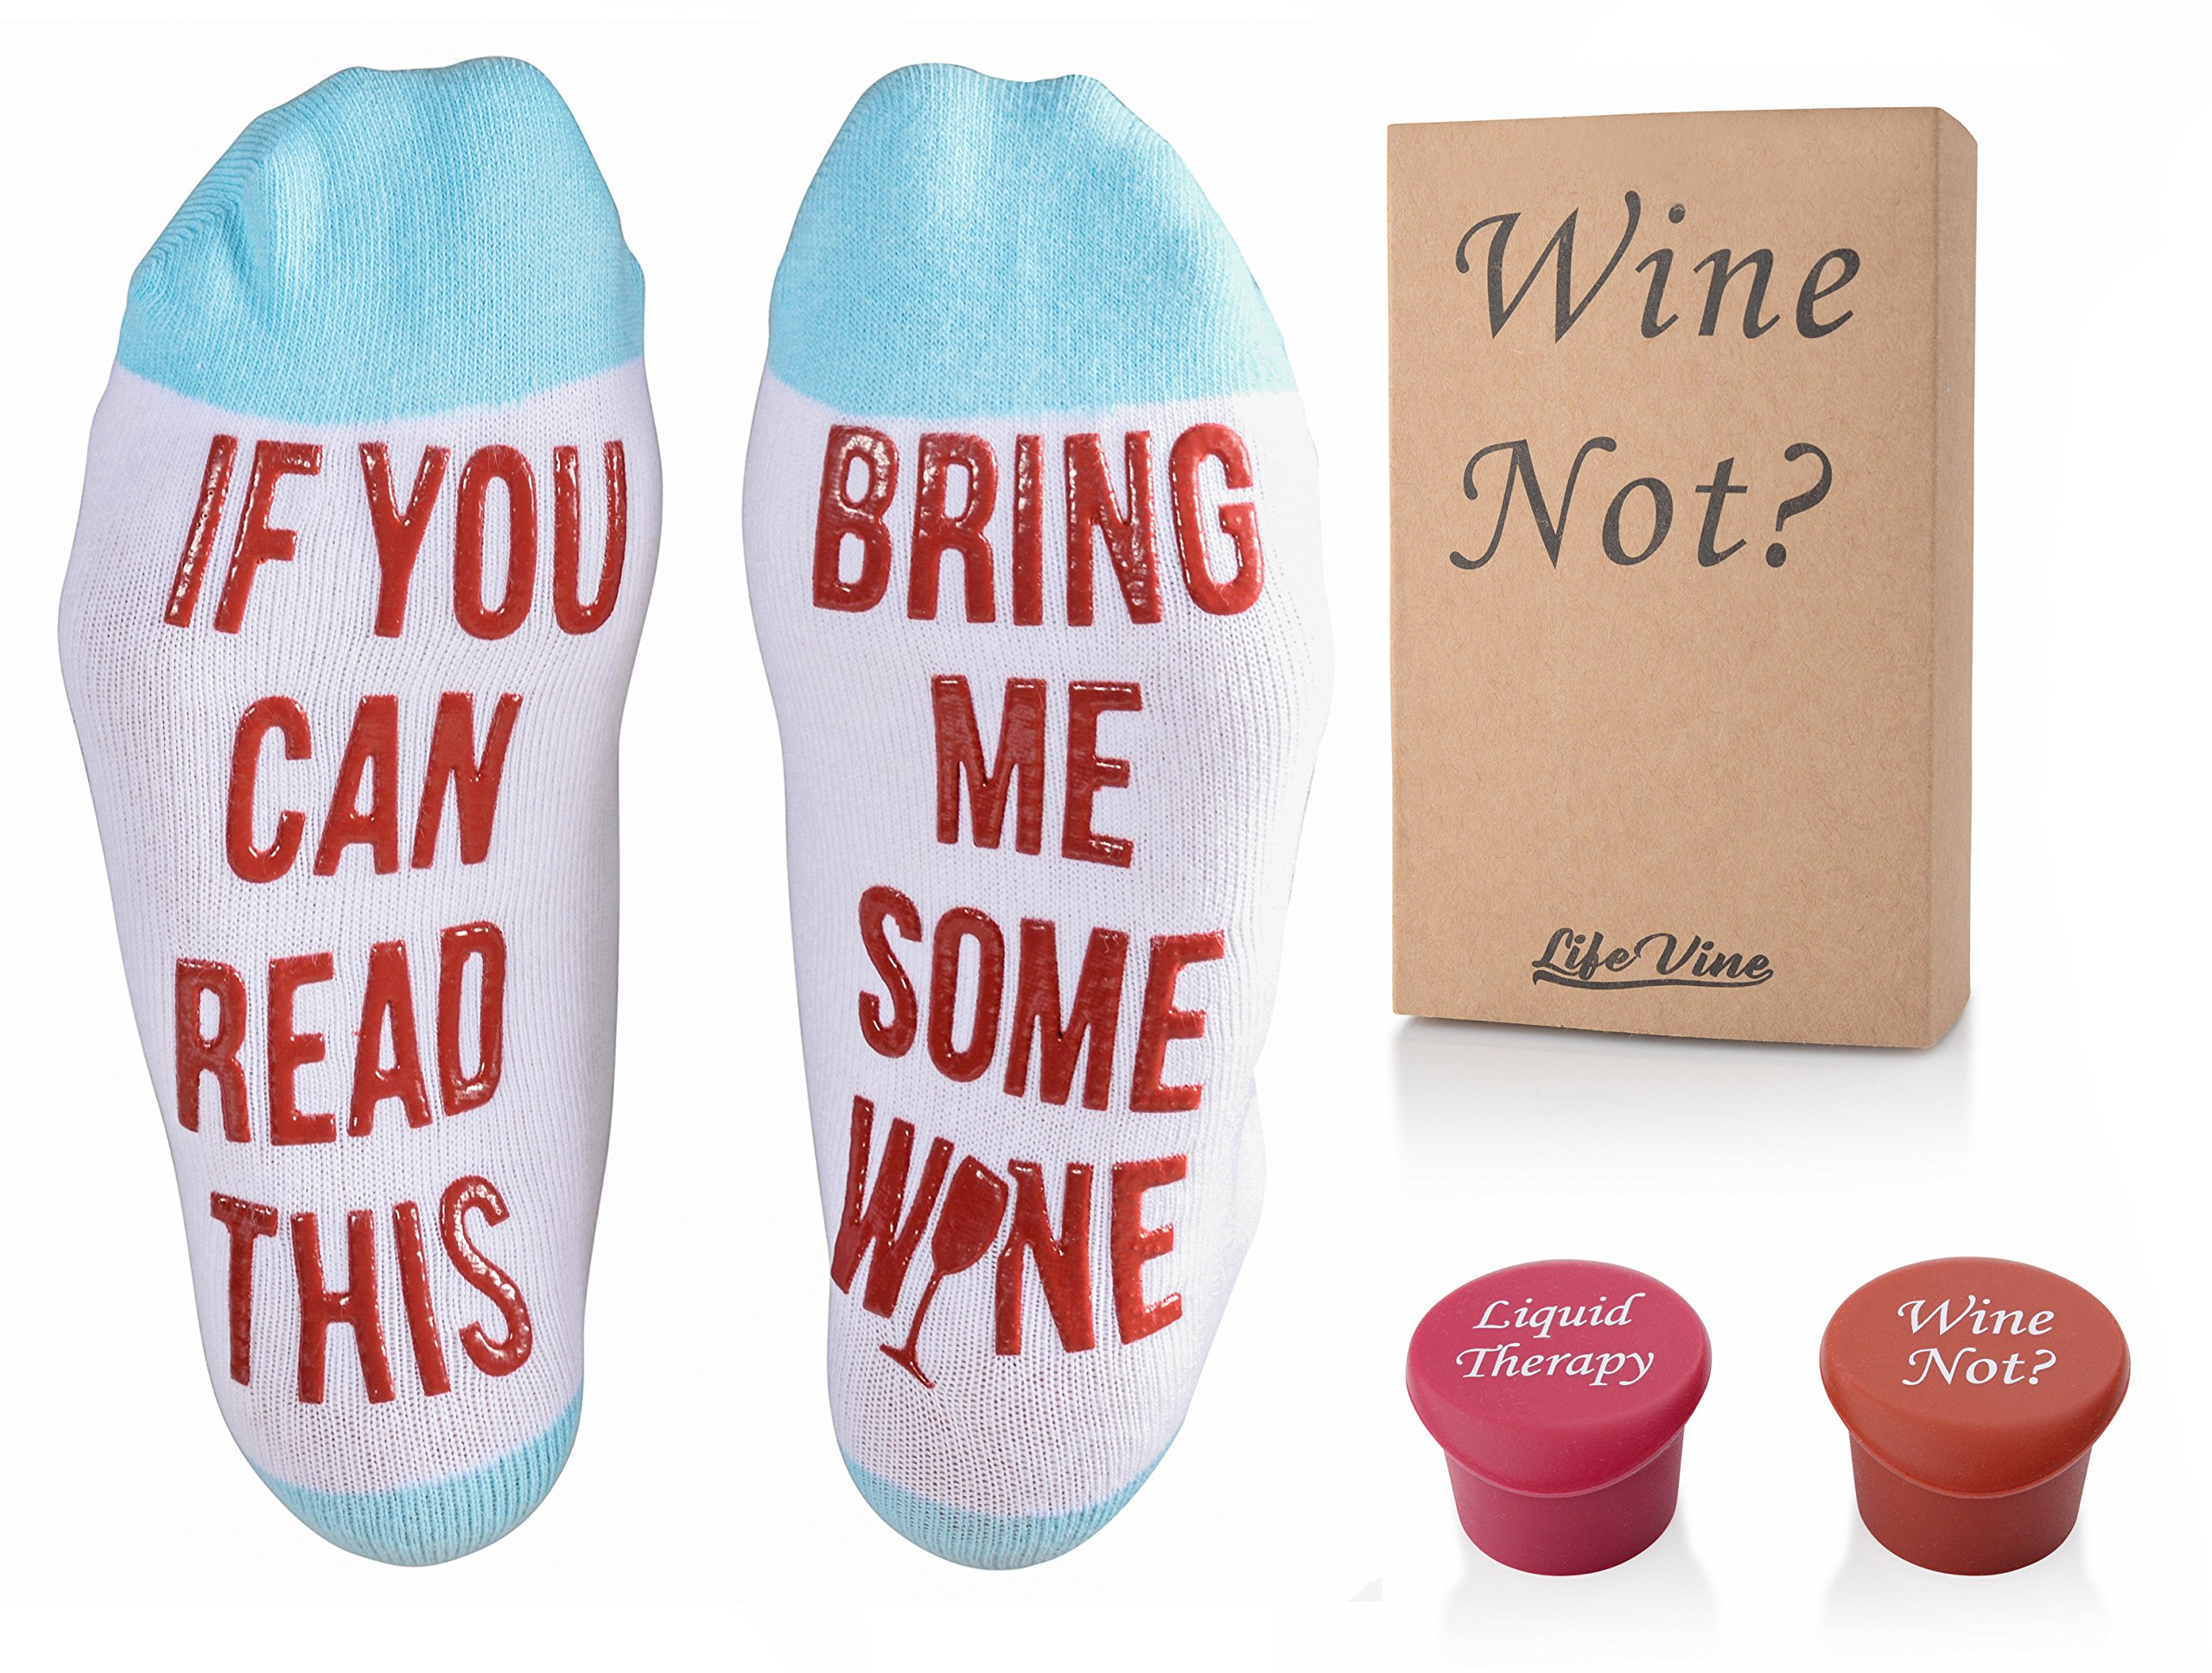 Luxury If You Can Read This Bring Me Some Wine Socks with Silicon Wine Stoppers in Gift Box Set Funny Accessory for Women, Wife, Wine Lover, Birthday, Housewarmings, Mother's Day